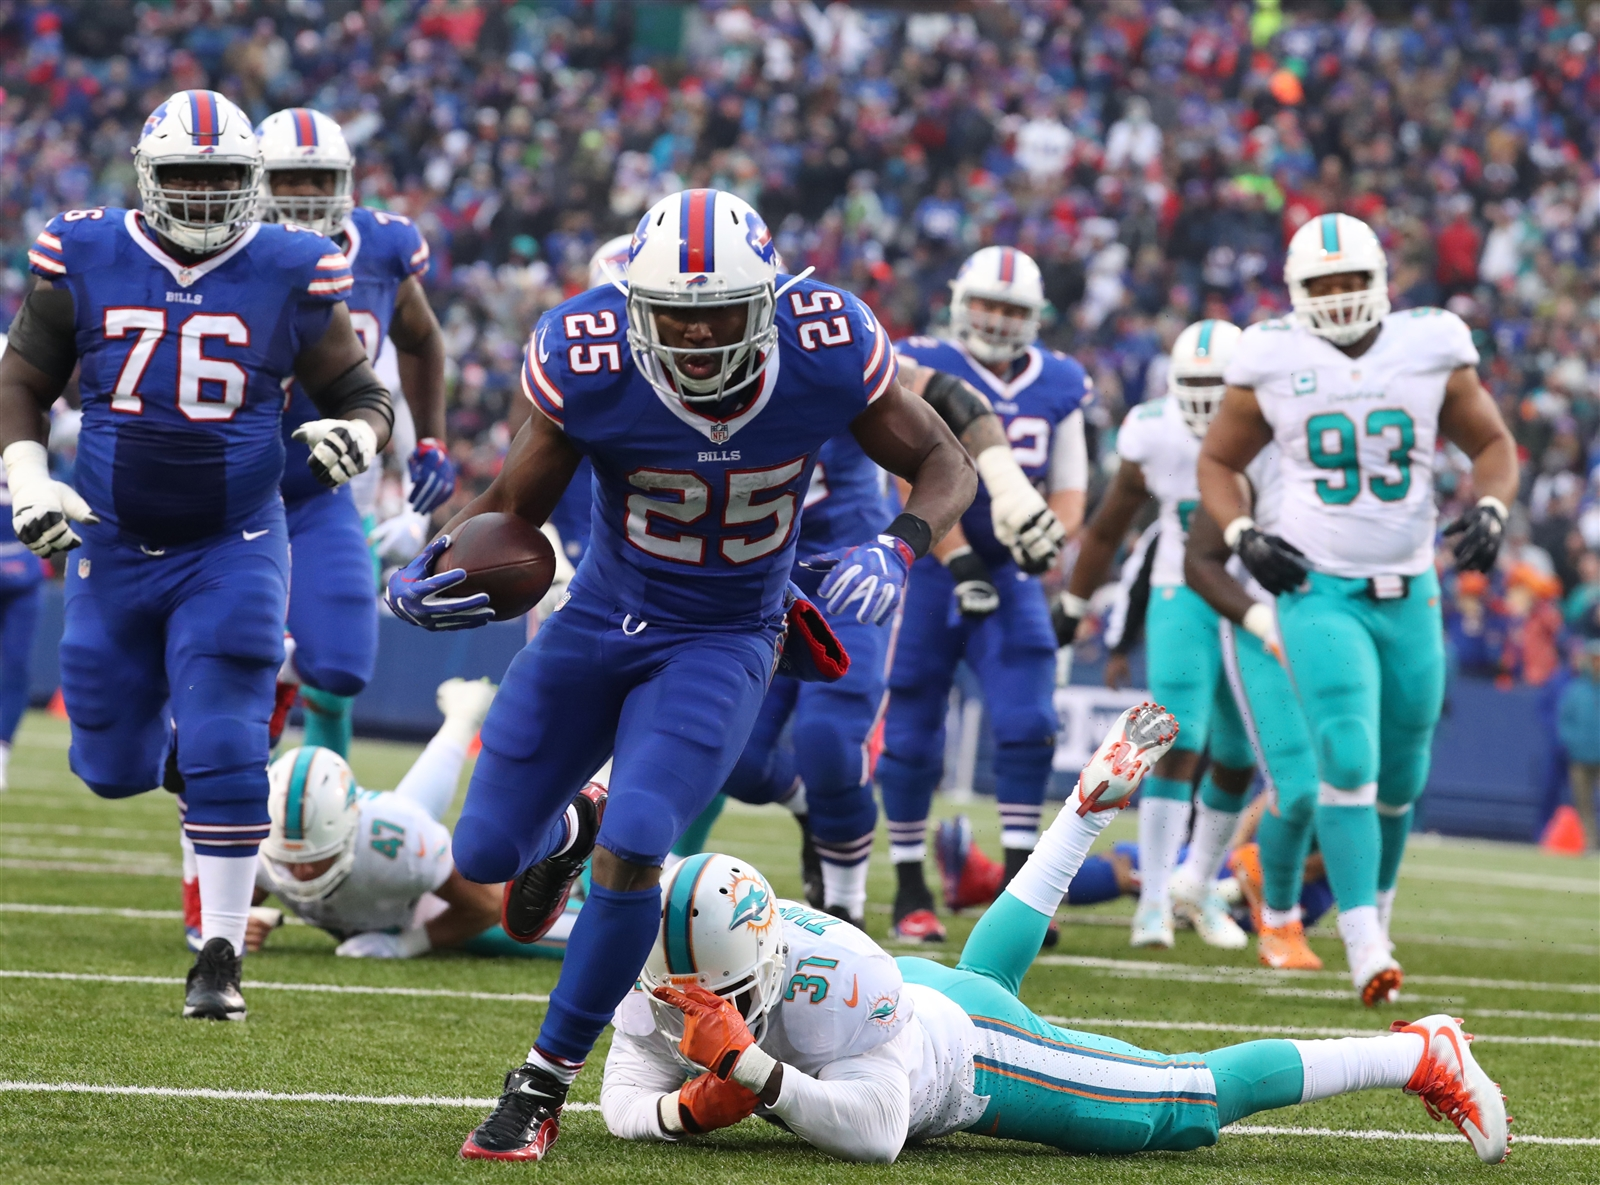 BILLS RUNNING GAME (A-): LeSean McCoy deserves better from his 2016 season. The Billsu2019 running back piled up another 128 yards on 24 carries, an average of 5.3 yards per rush. The Bills ran for a whopping 272 yards on 49 carries, 5.6 yards per rush. Backup Mike Gillislee ripped off 91 yards on just 11 carries, an average of 8.3 yards per carry. Quarterback Tyrod Taylor chipped in 60 on the ground. The Billsu2019 No. 1 ranking on the ground is well deserved, but the reverse to Reggie Bush in overtime is one of the worst calls of the season, hurting the overall grade.